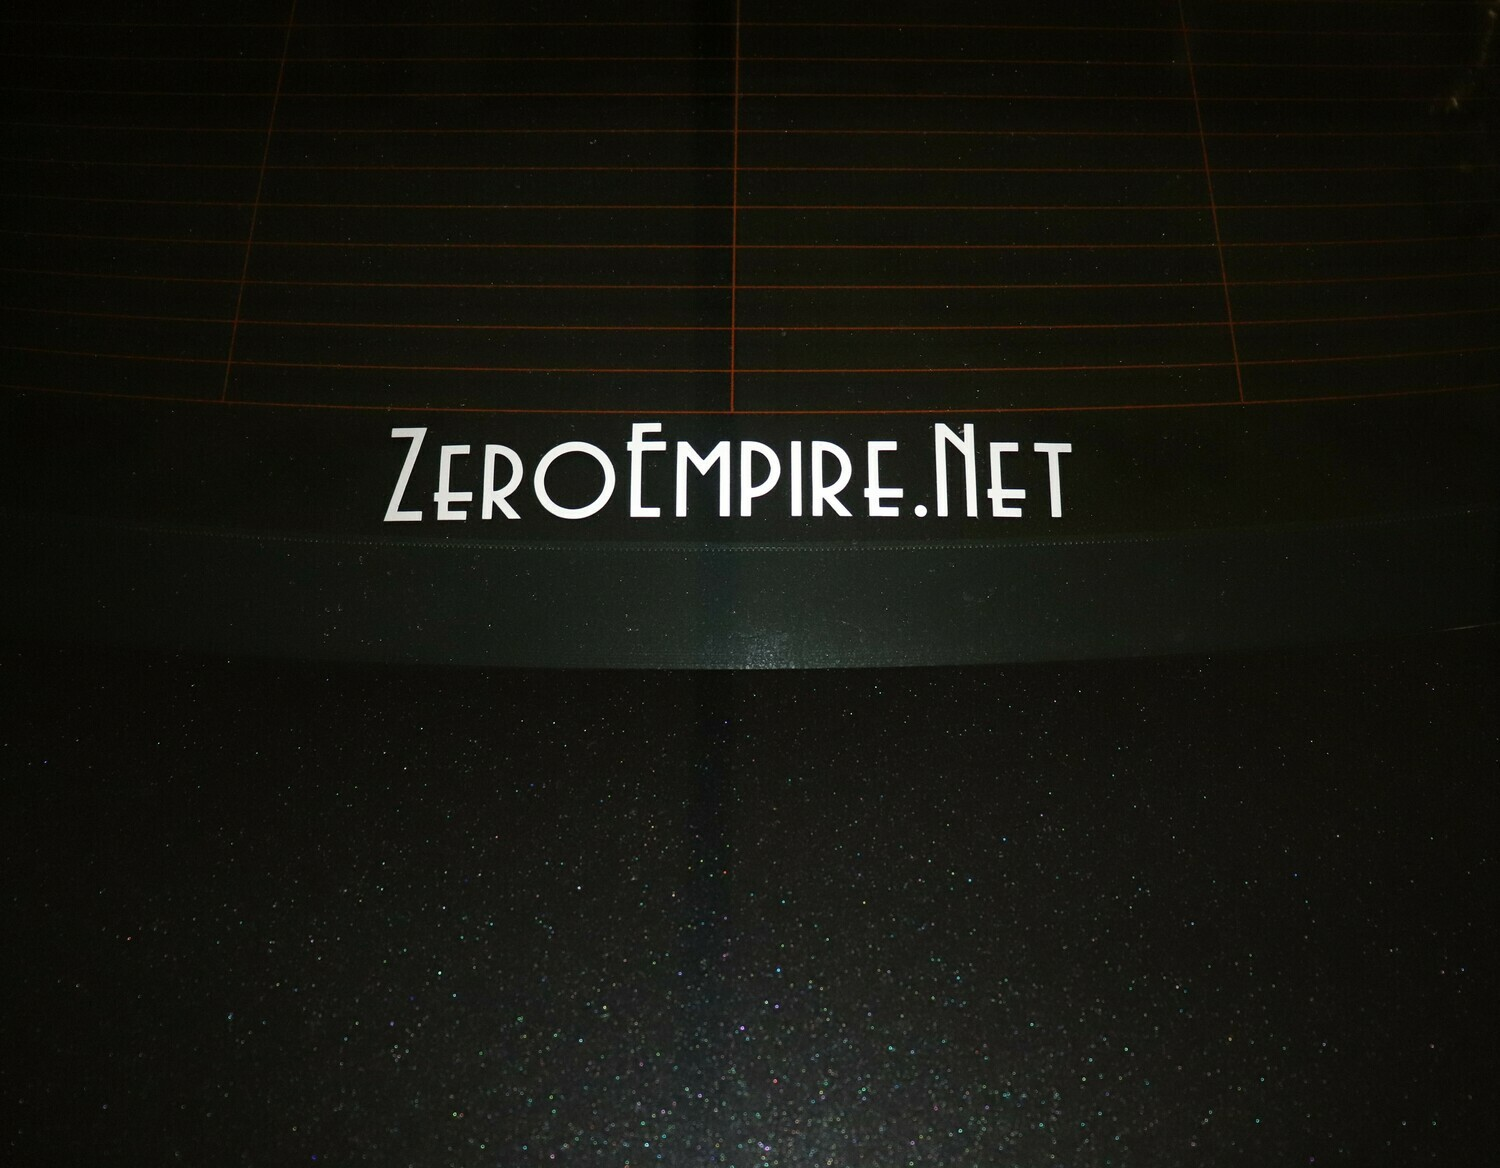 ZeroEmpire Decals